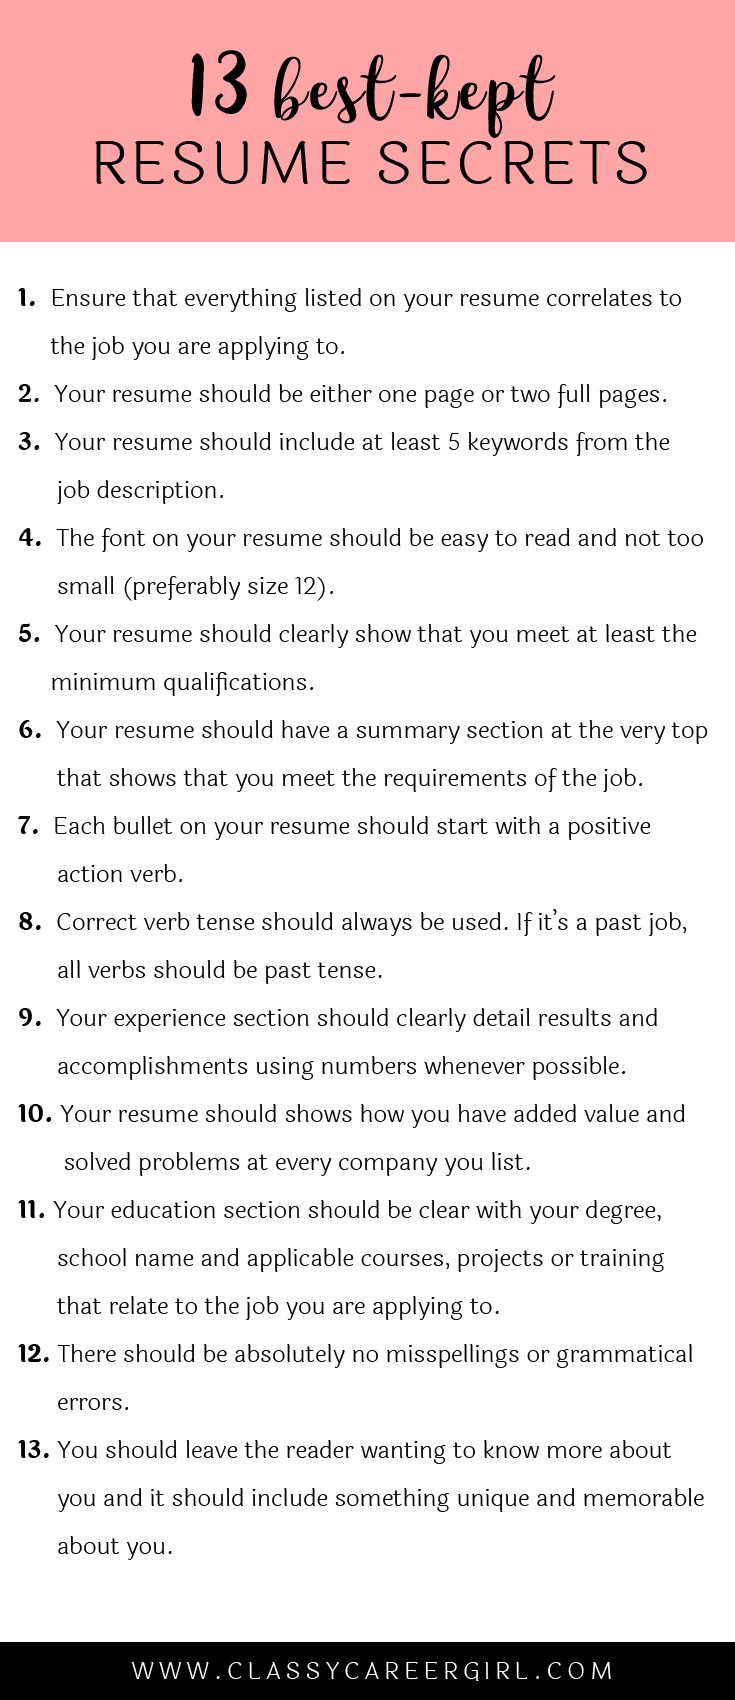 Opposenewapstandardsus  Sweet  Ideas About Resume On Pinterest  Cv Format Resume  With Fetching Some Hiring Managers Will Toss Your Resume Out If You Dont Know These  With Charming Professional Resume Outline Also Skills To Include On A Resume In Addition Nursing Graduate Resume And Network Technician Resume As Well As Strong Resume Objective Additionally Resume Search For Employers From Pinterestcom With Opposenewapstandardsus  Fetching  Ideas About Resume On Pinterest  Cv Format Resume  With Charming Some Hiring Managers Will Toss Your Resume Out If You Dont Know These  And Sweet Professional Resume Outline Also Skills To Include On A Resume In Addition Nursing Graduate Resume From Pinterestcom